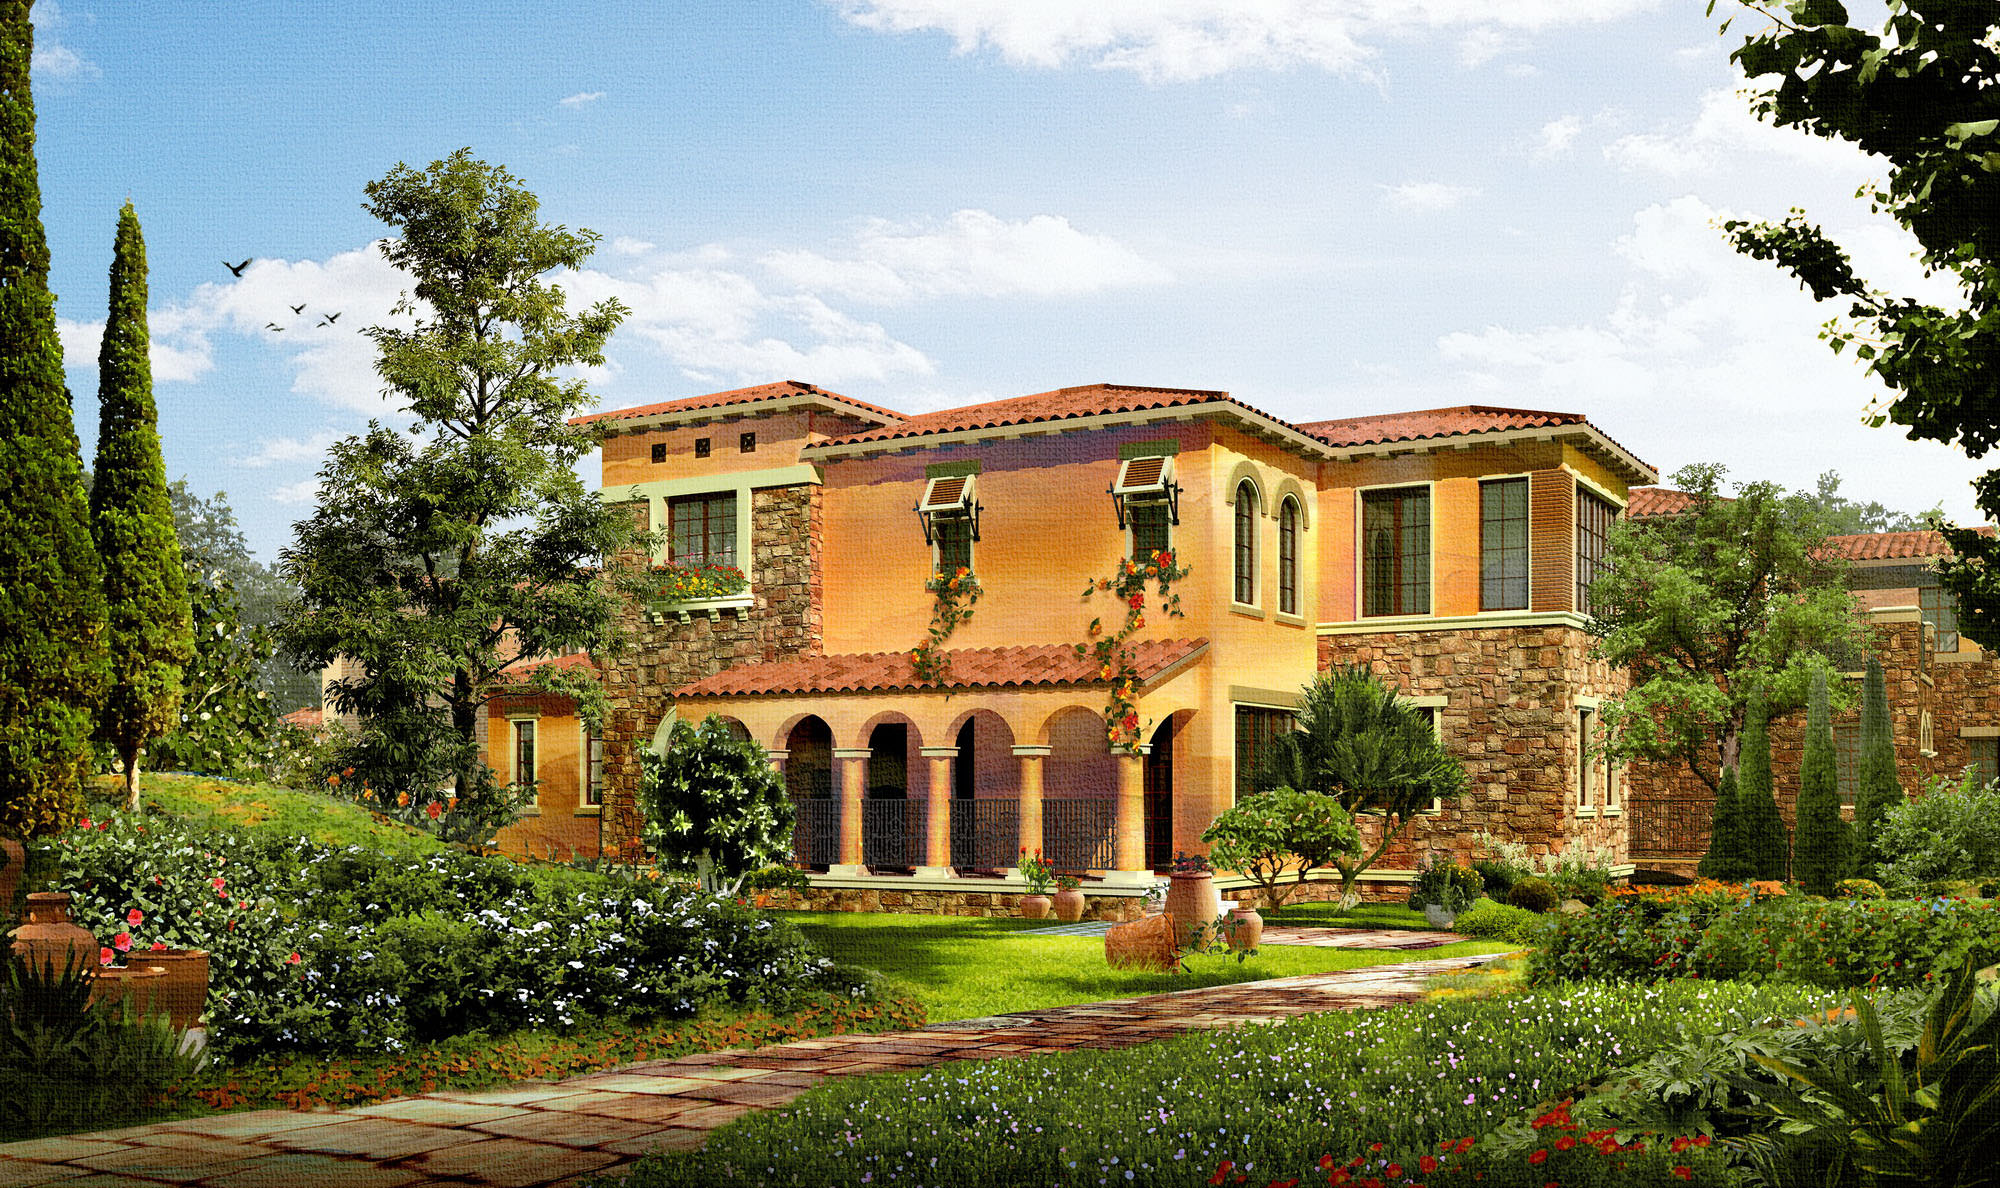 Luxury mansion day night 668 3d models 3d model max for Luxury home models